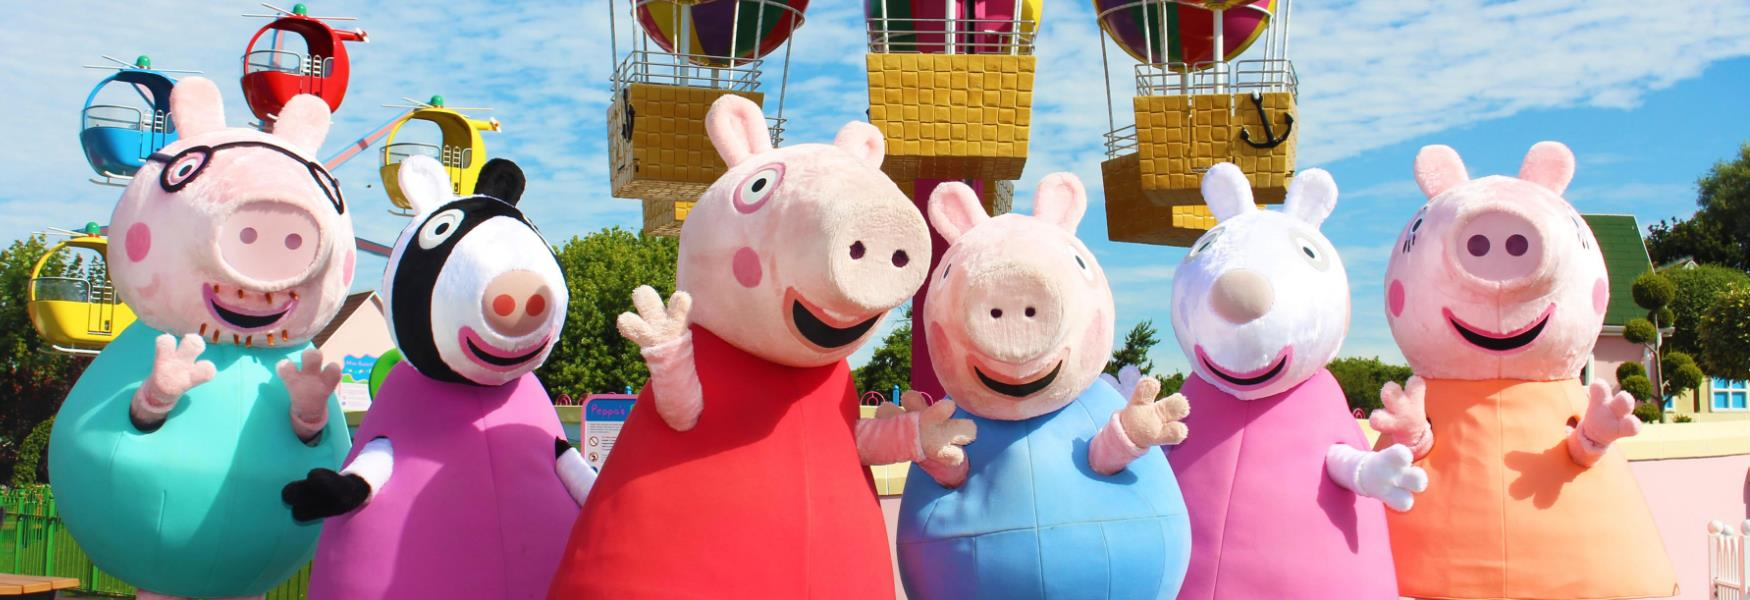 Peppa Pig and friends in Peppa Pig World at Paultons Park in the new forest